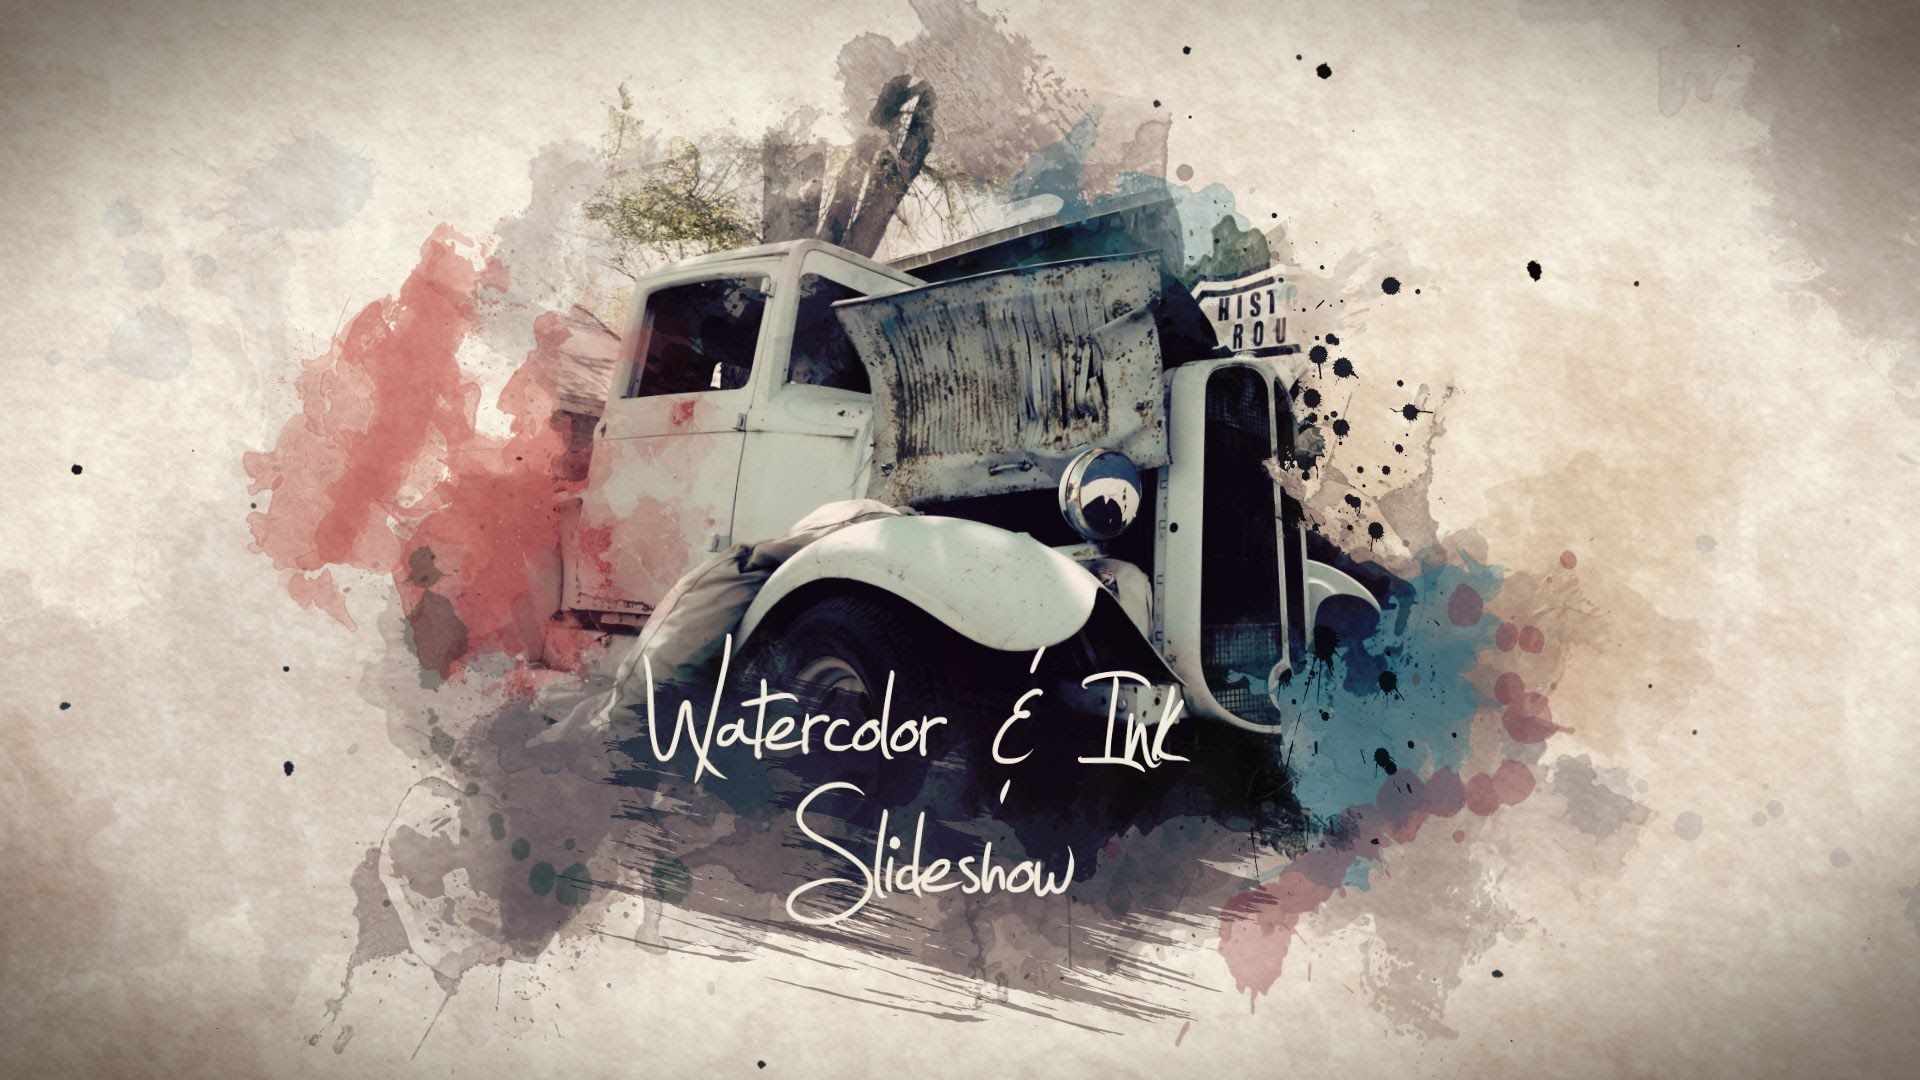 After effects template watercolor ink slideshow for Watercolor painting templates free